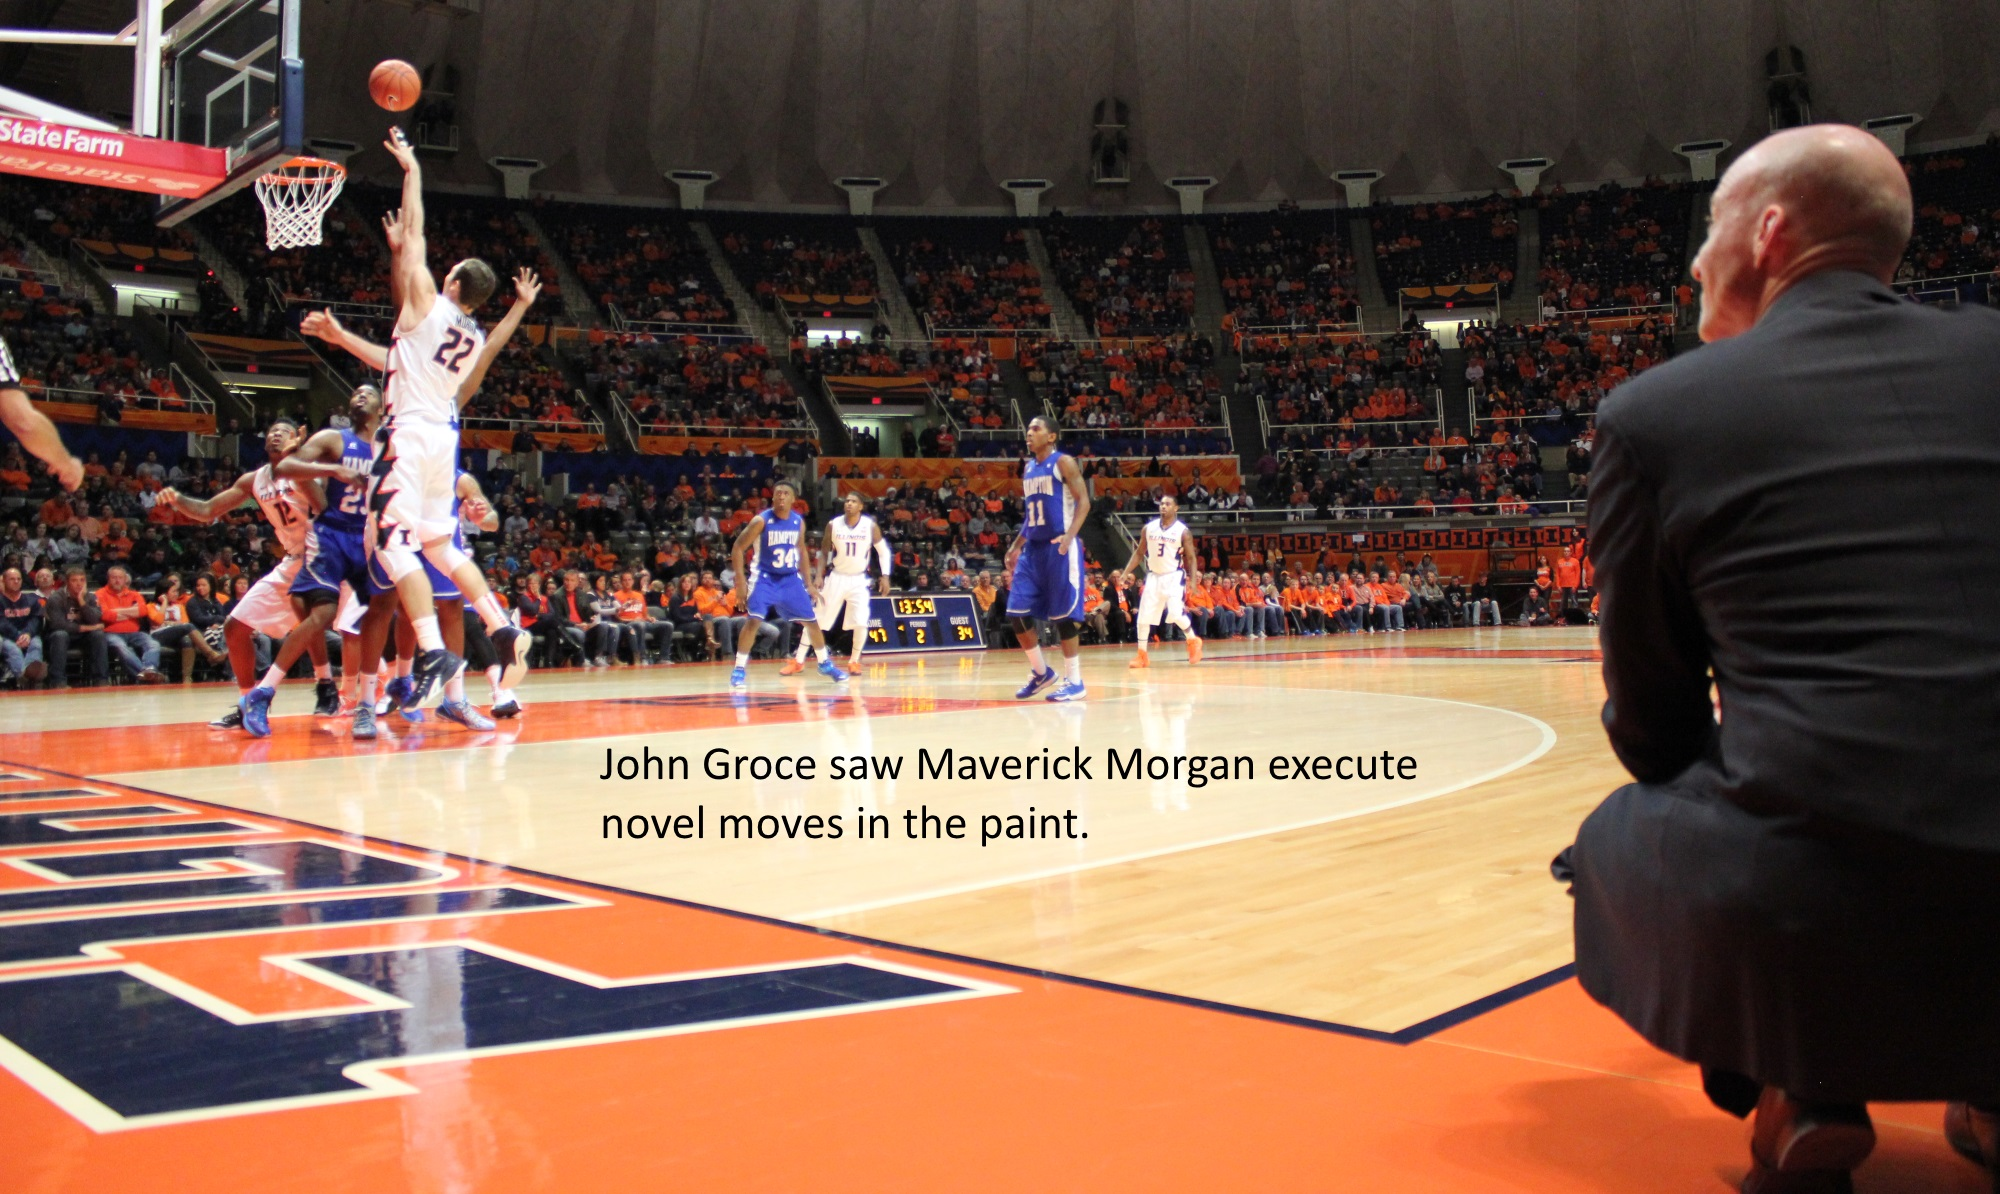 John Groce watches Maverick Morgan